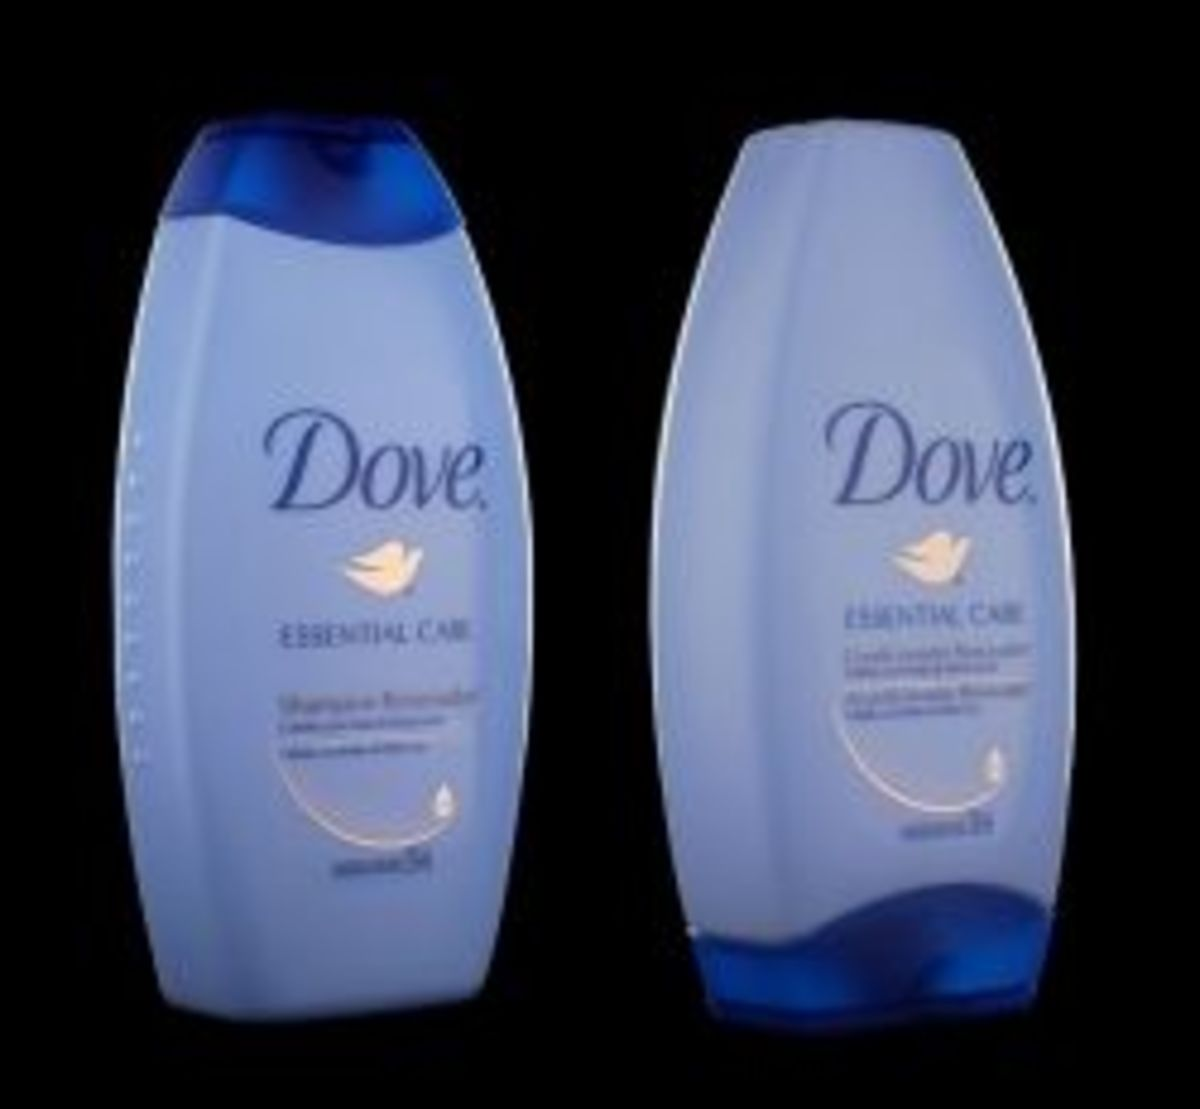 Shampoo and Conditioner (Image is in the public domain)